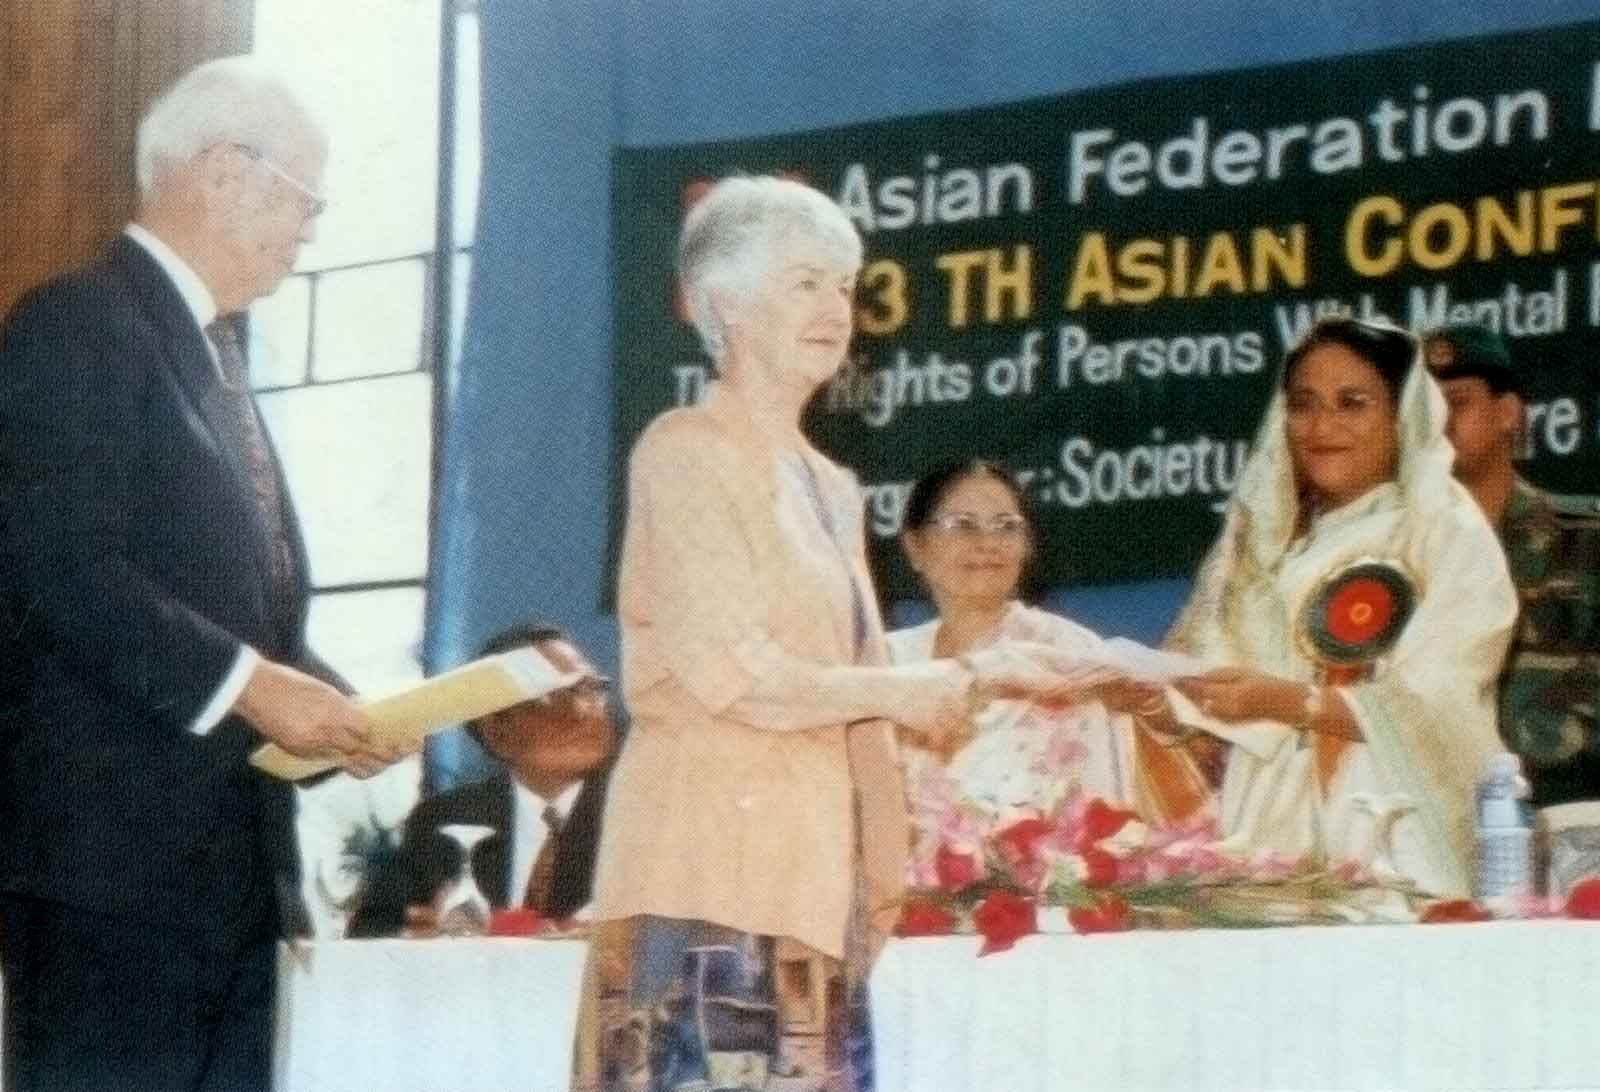 Foreign delegates with Prime Minister Sheikh Hasina at the 13th ACMR Bangladesh, 1997